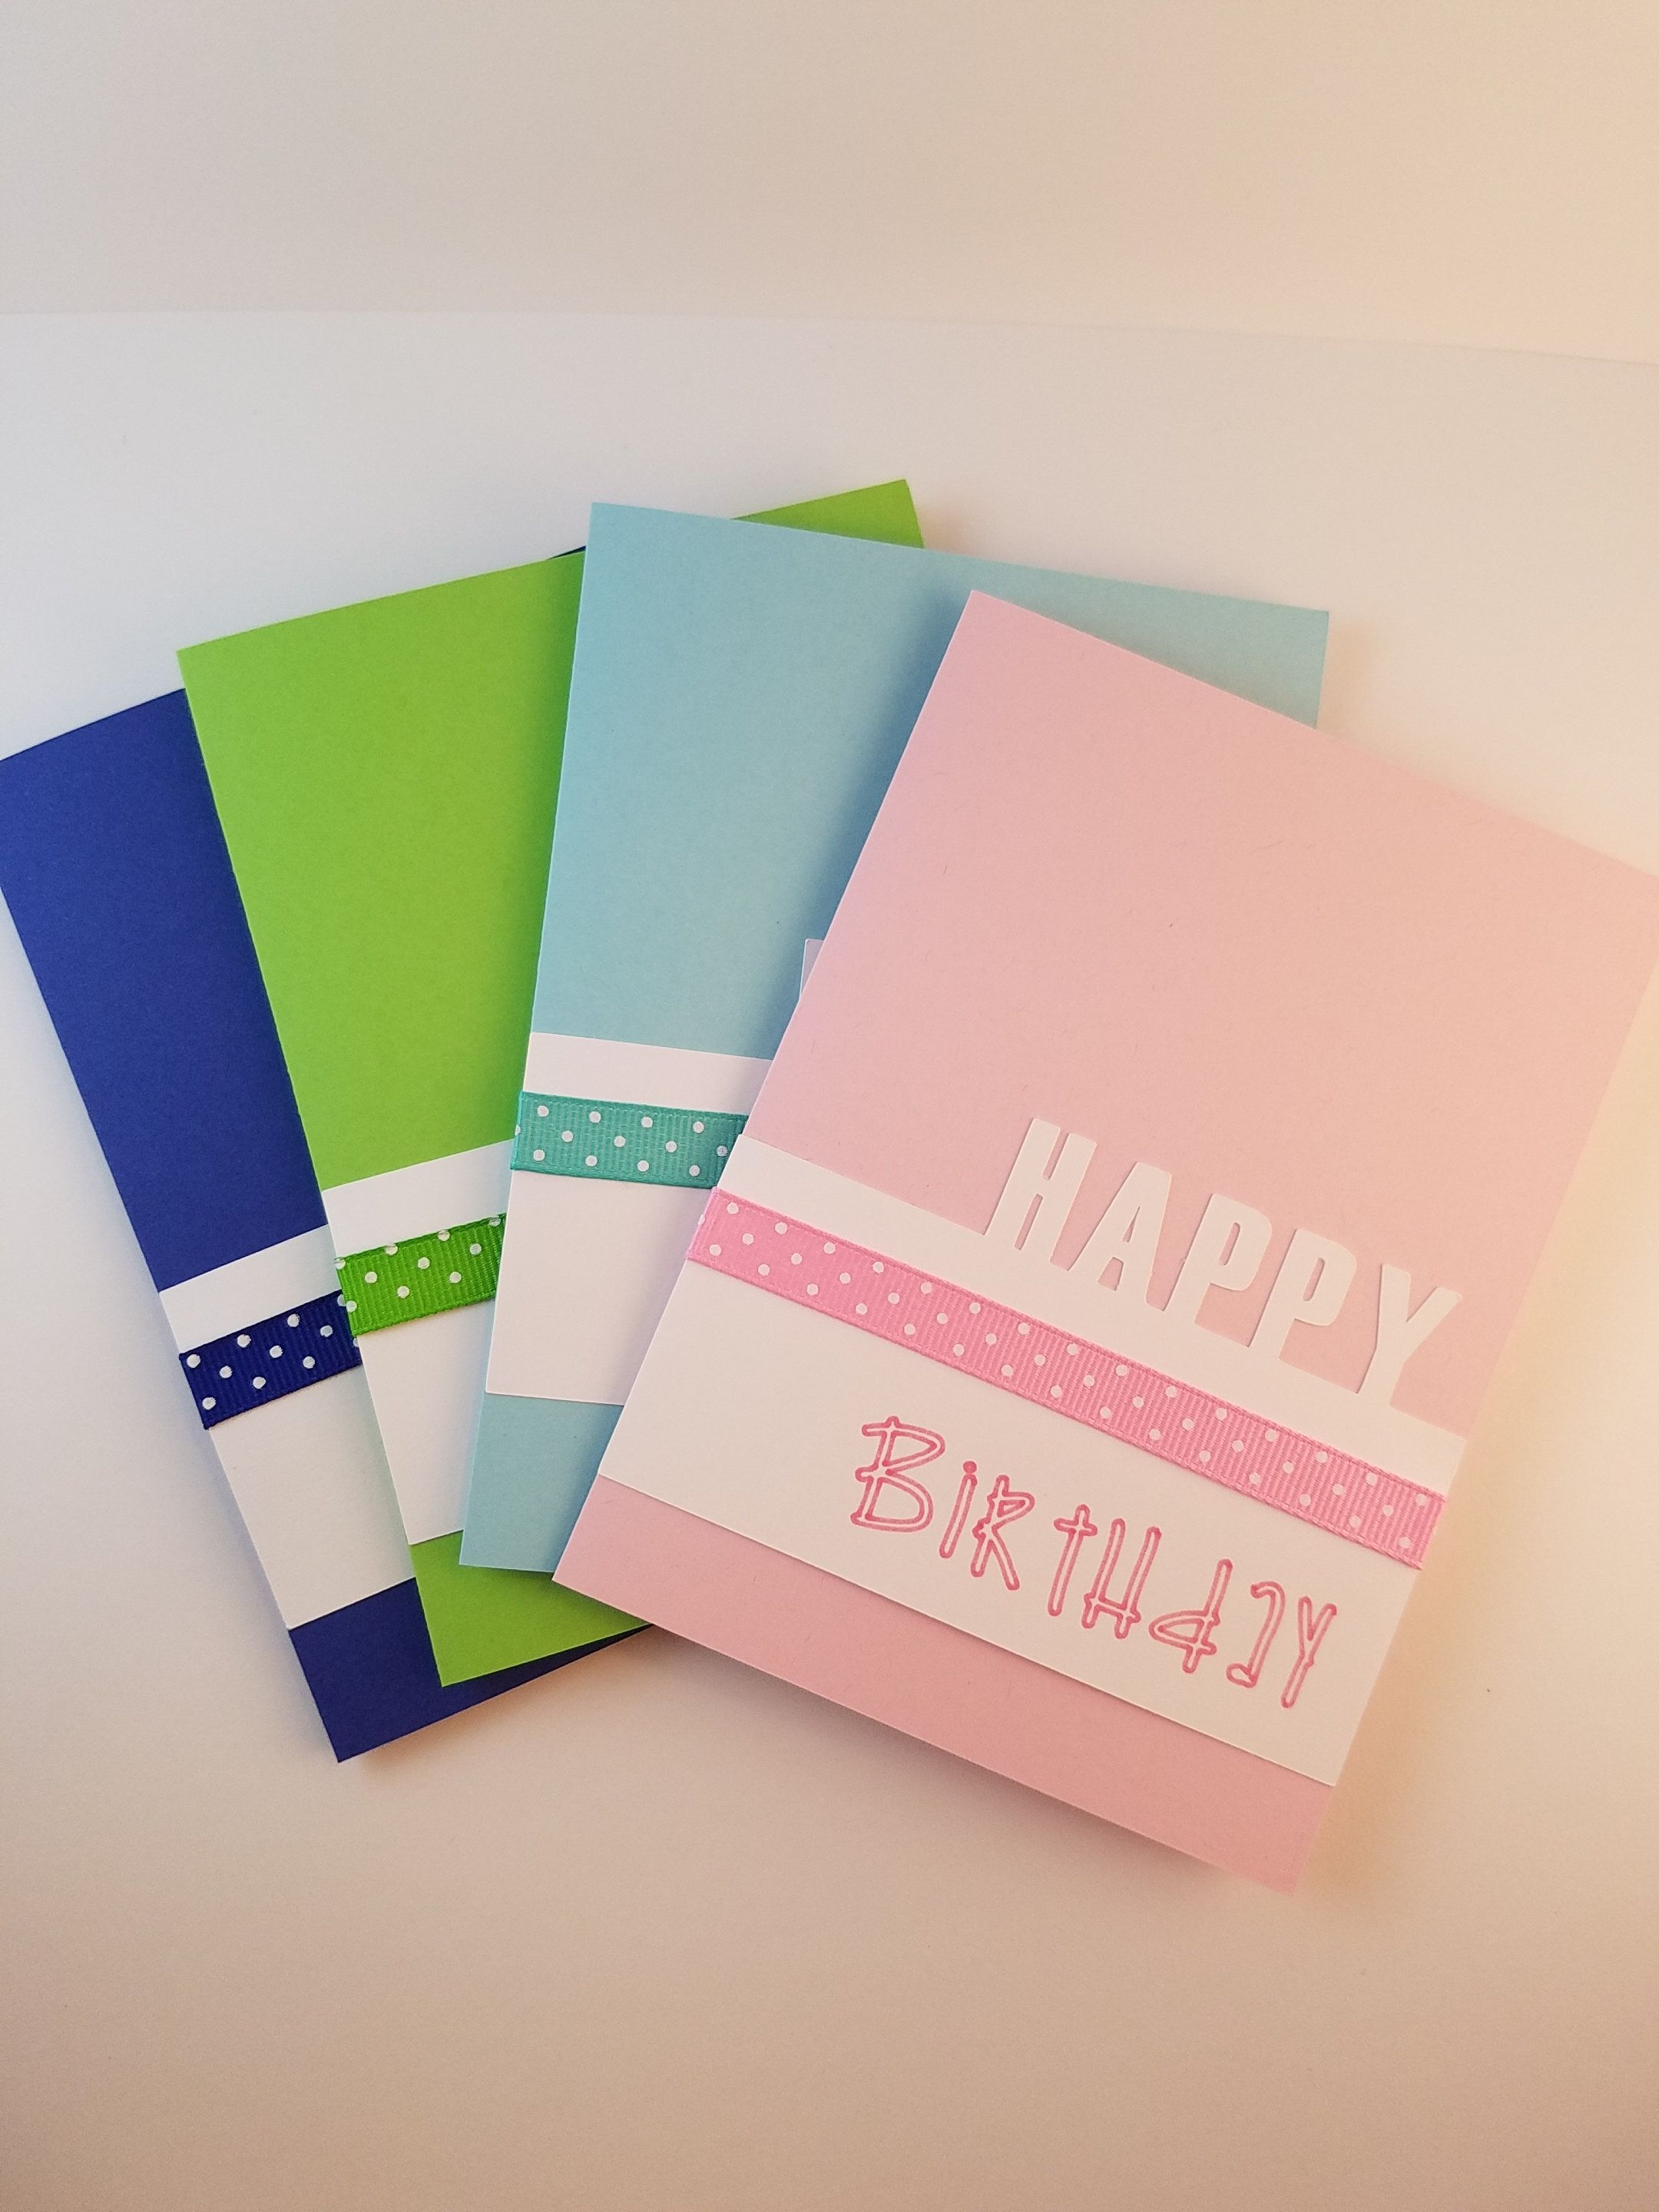 happy birthday card handmade birthday card birthday card specialized greeting card birthday gift card for sibling cards in bulk by - Assorted Birthday Cards In Bulk